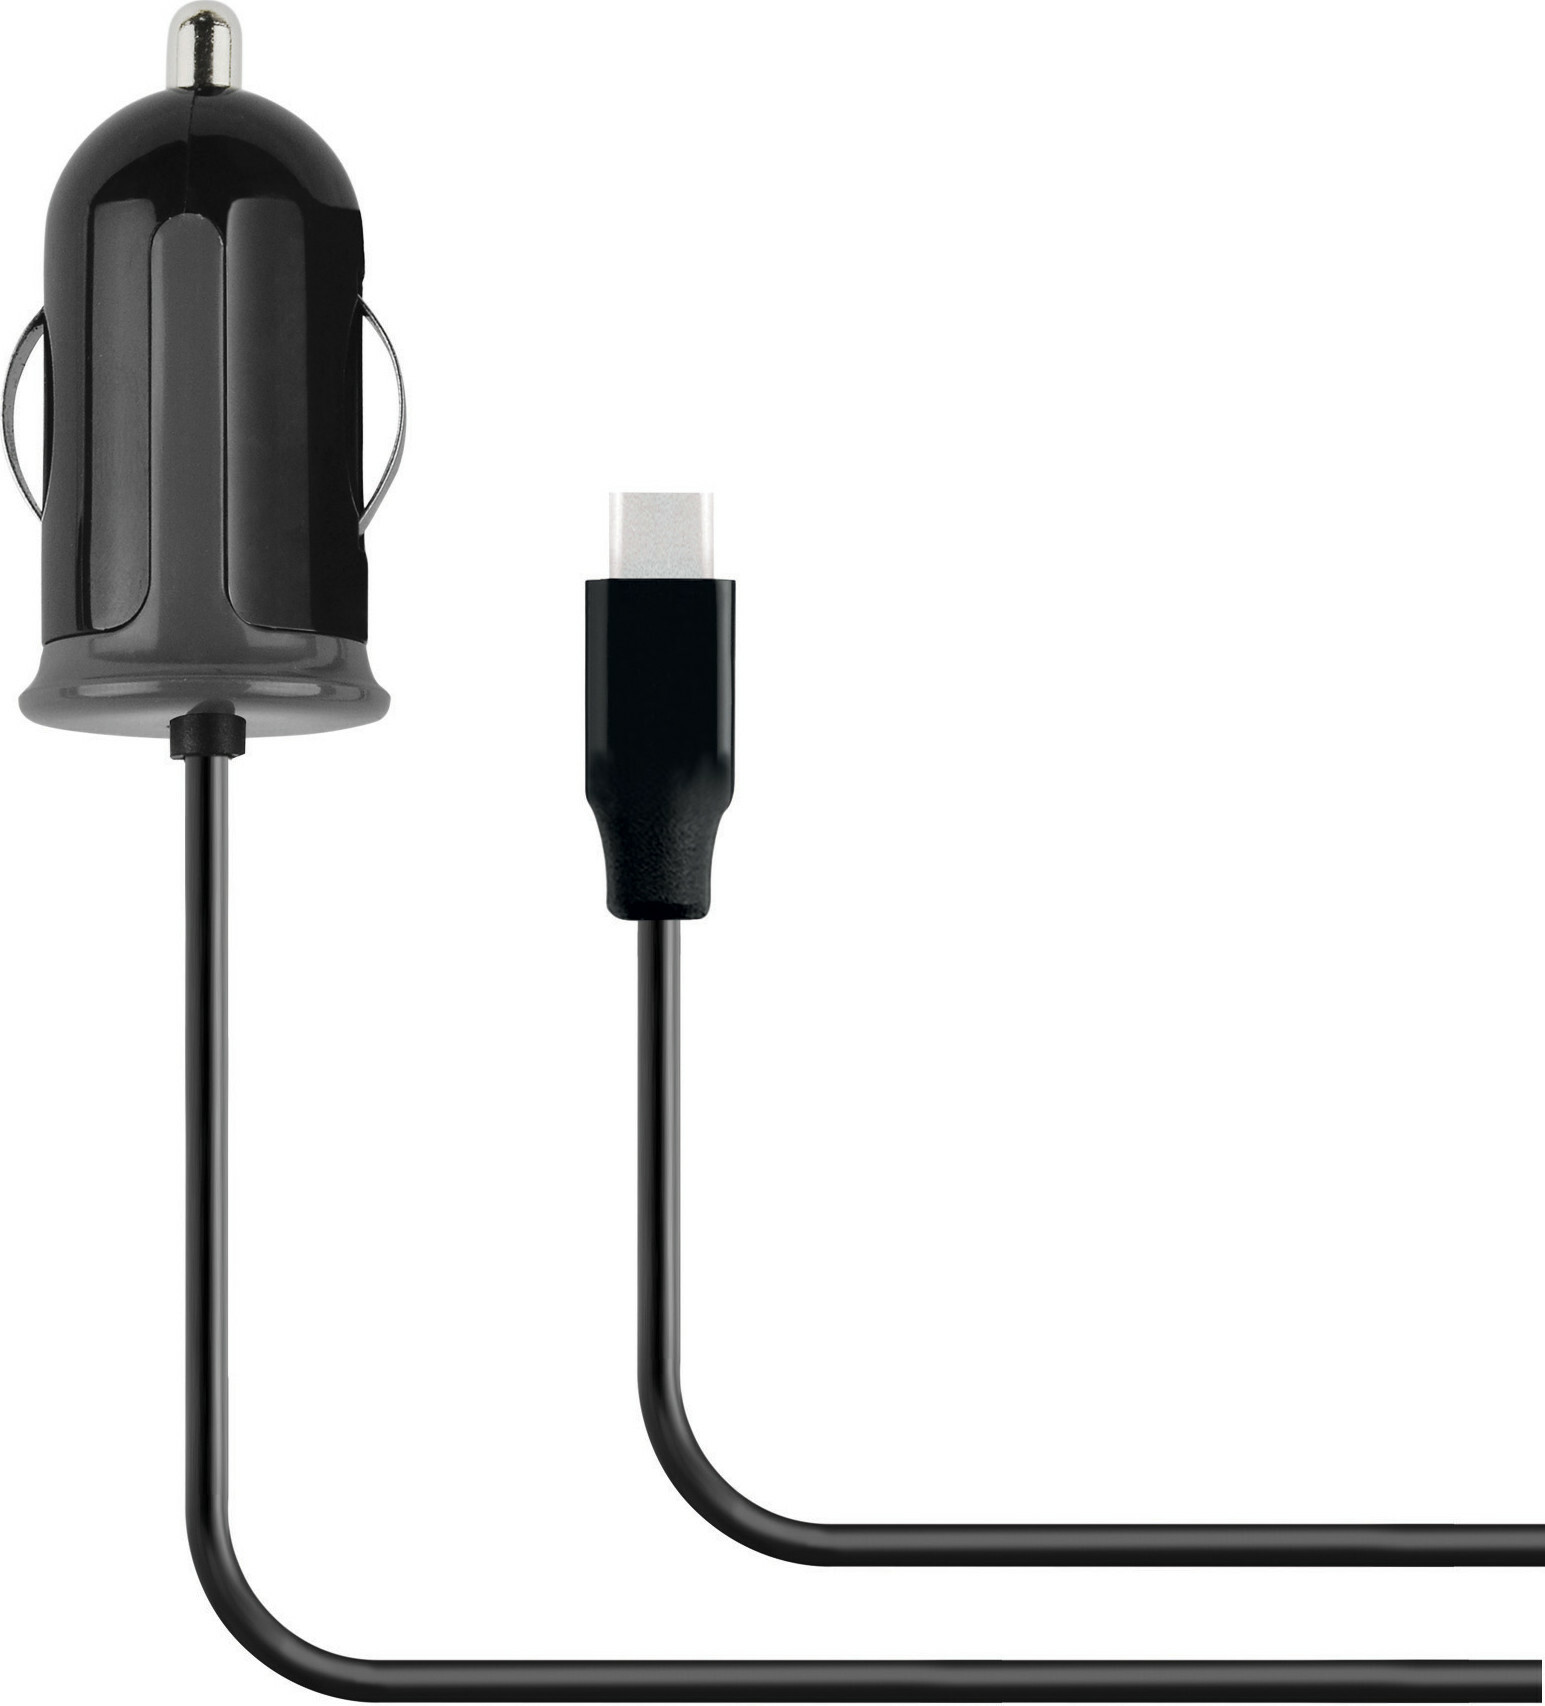 Mobiparts Car Charger USB-C 2.4A Black